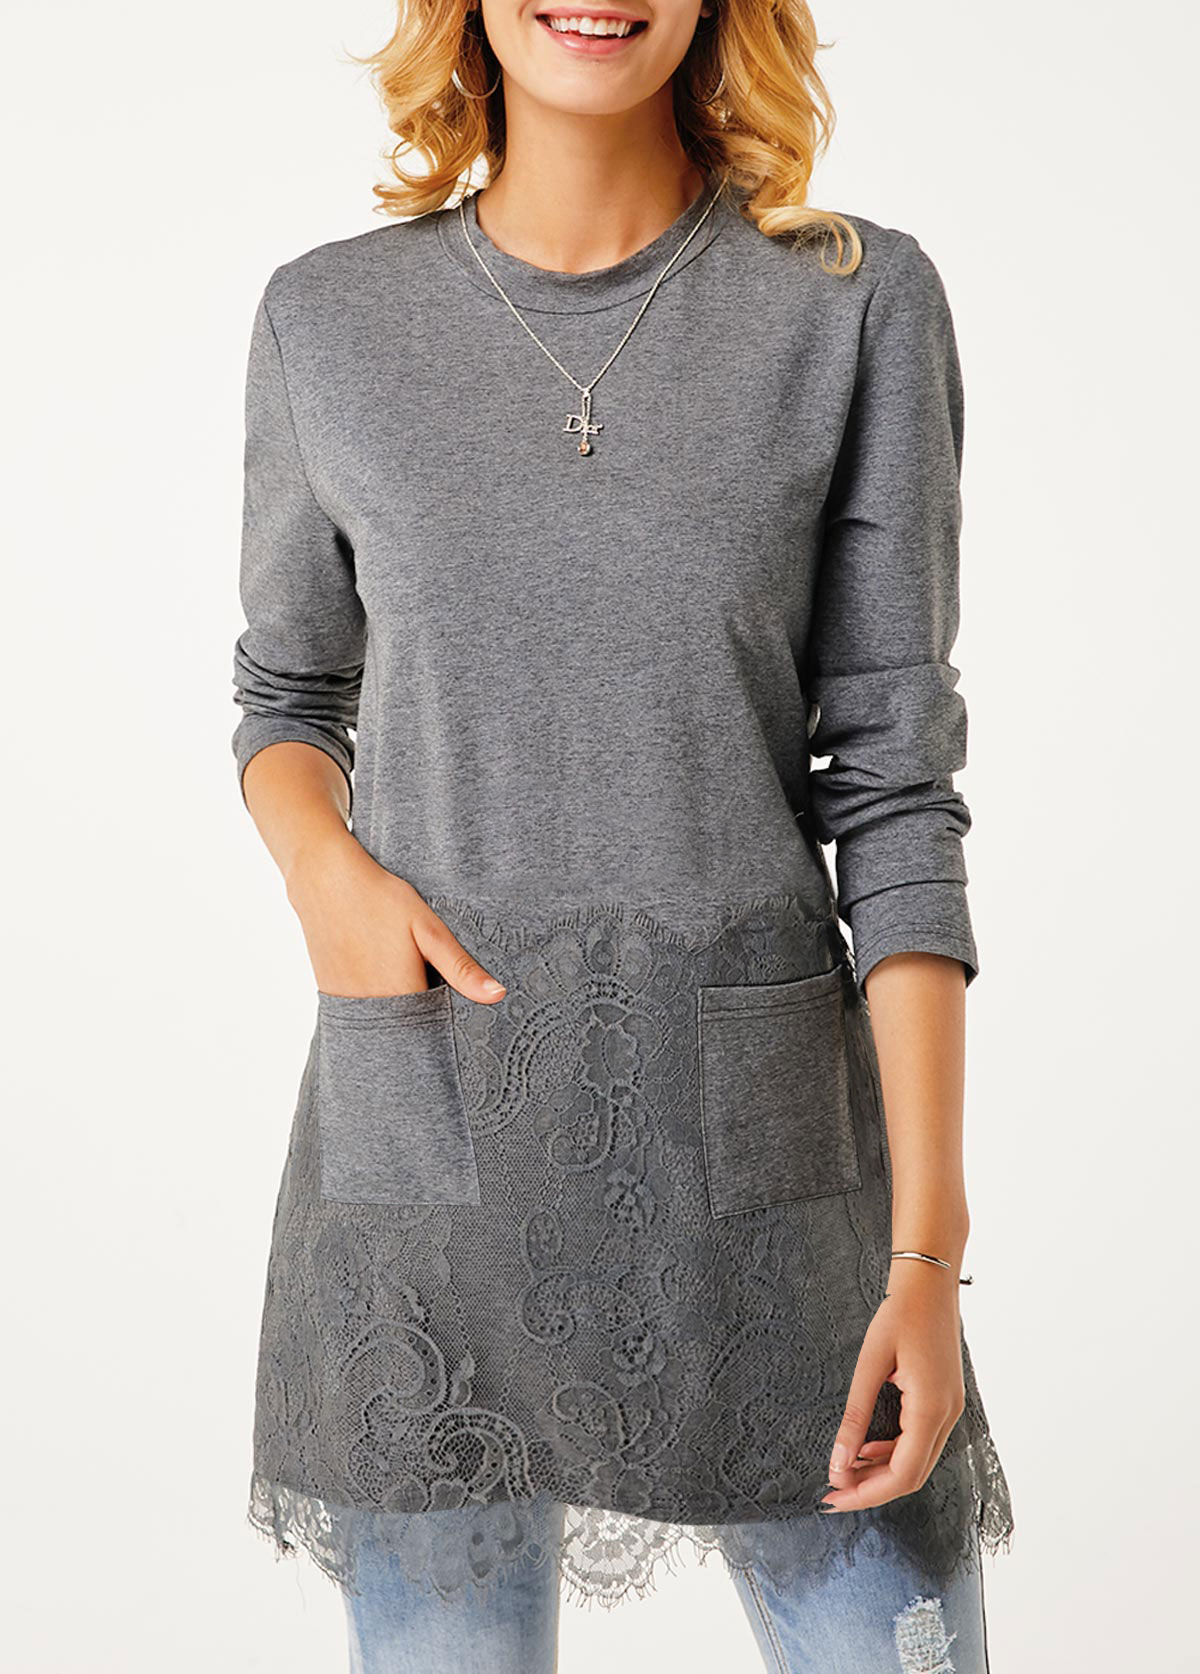 Lace Panel Long Sleeve Pocket Tunic Top